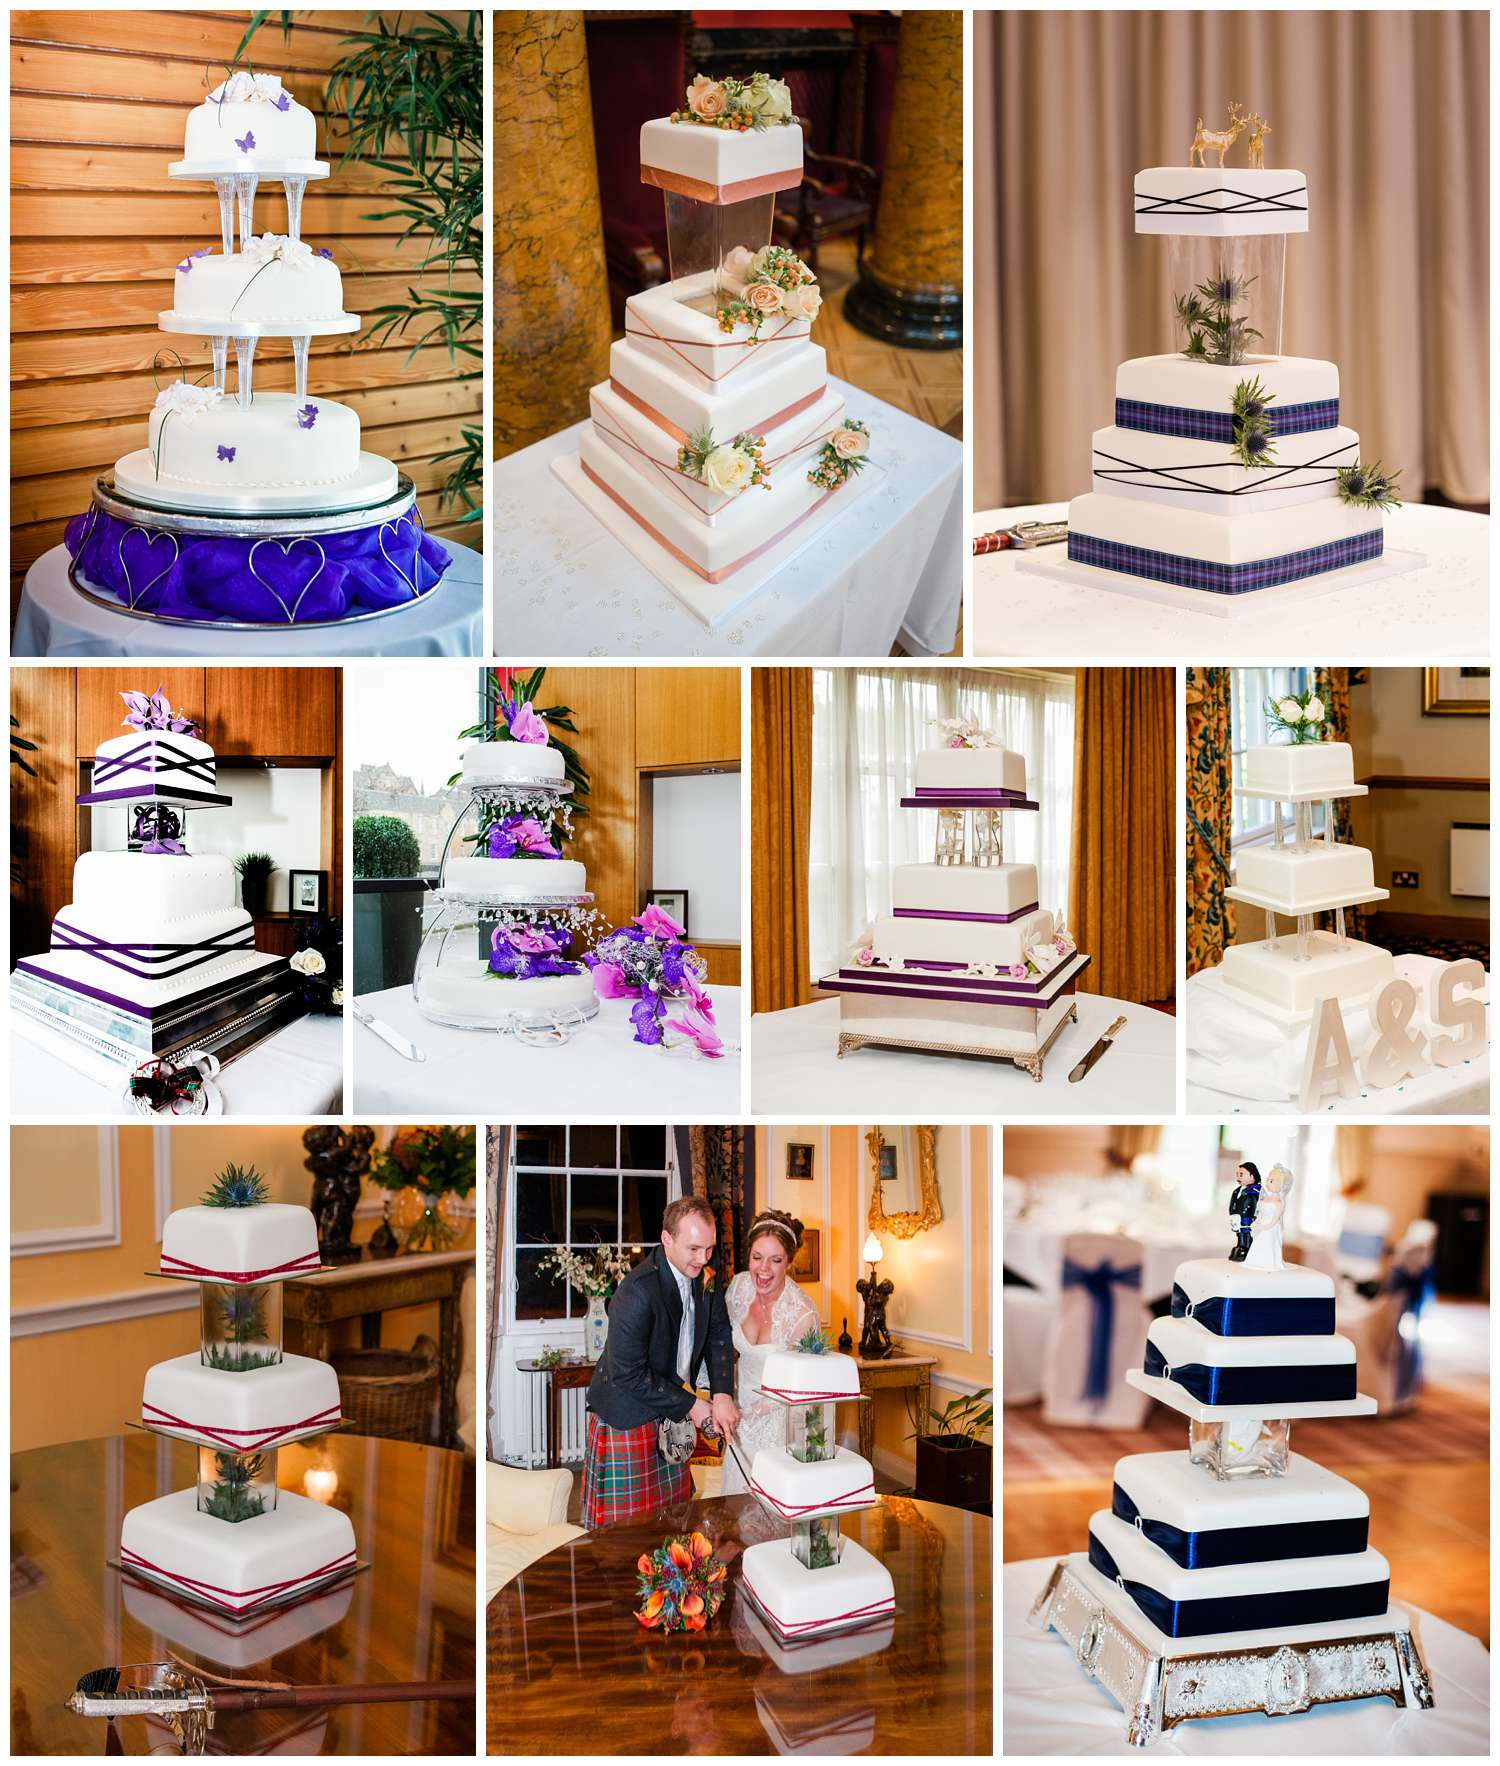 Wedding cake ideas on cake stands, ideas for your wedding cake